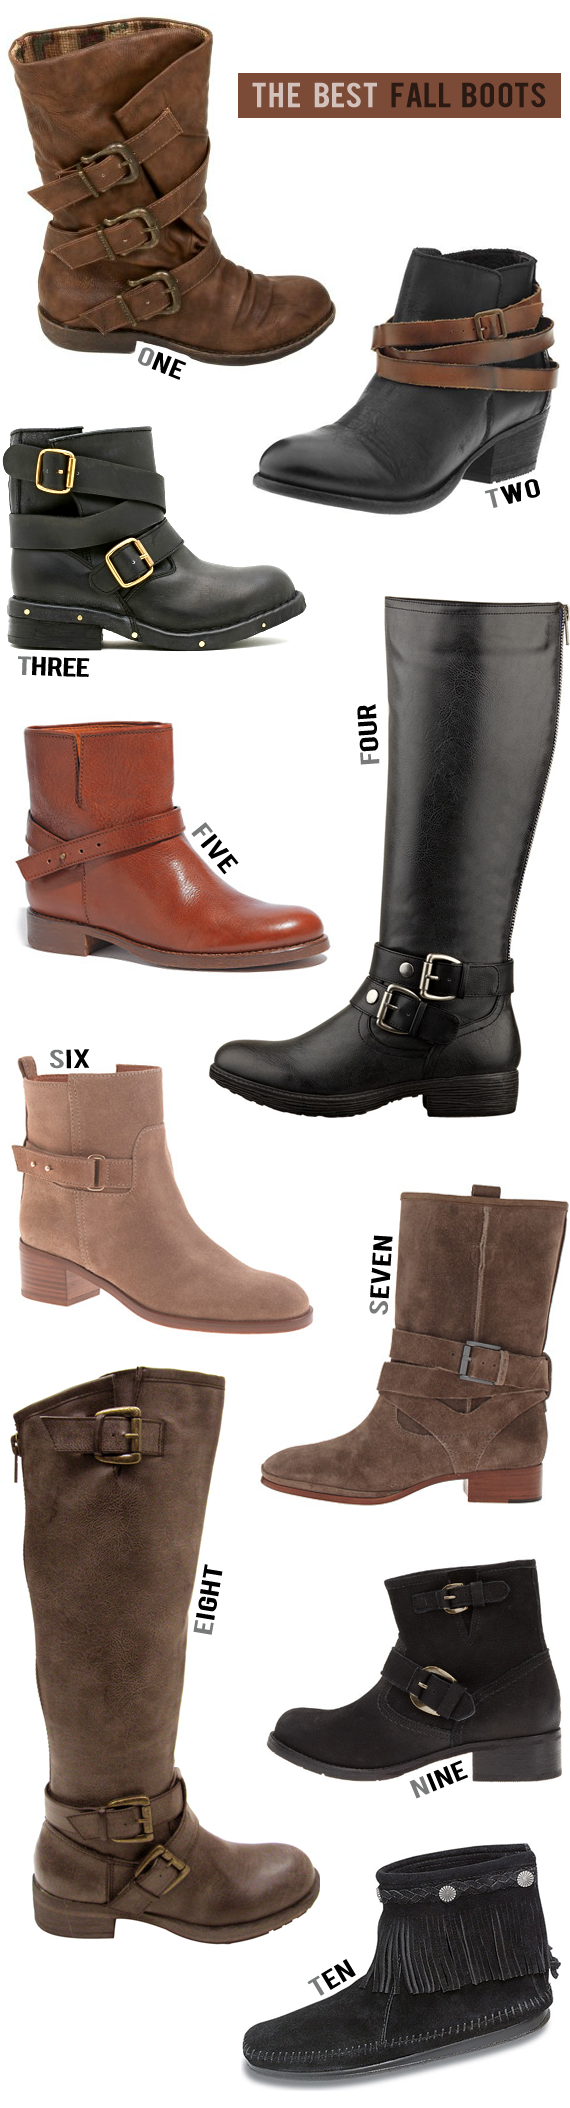 The 10 Best Boots for Fall 2013 // Bubby and Bean